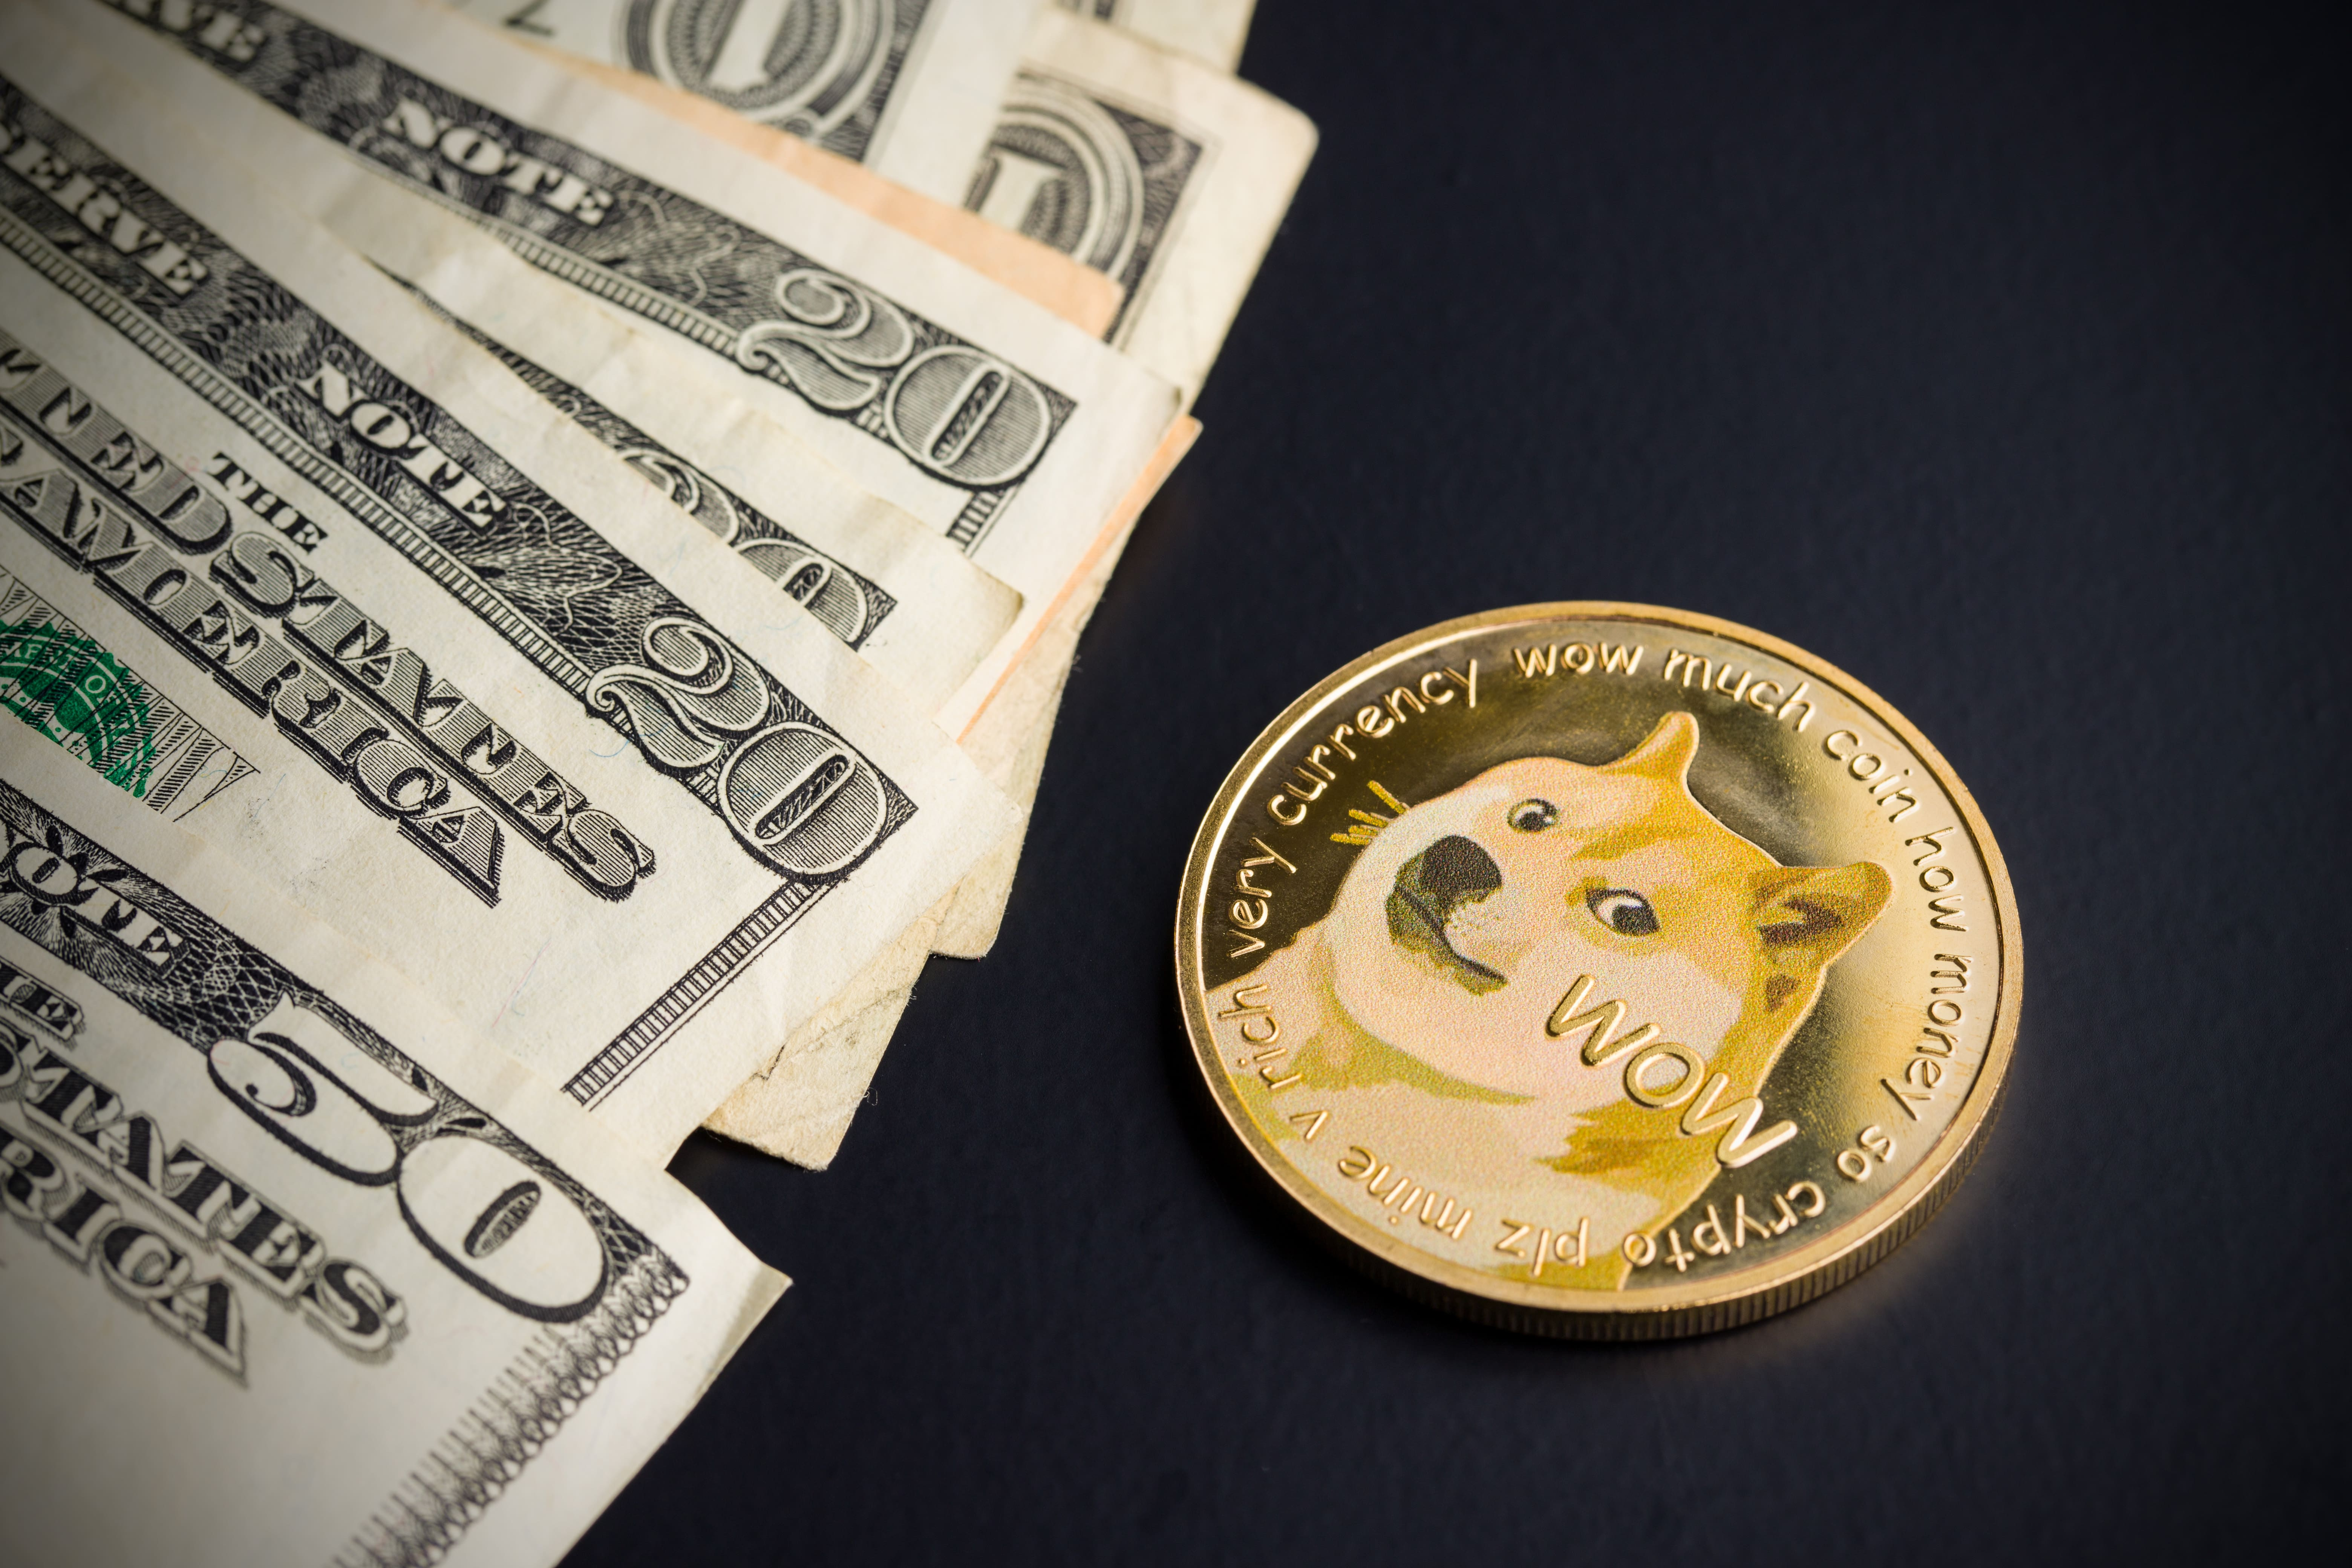 A Dogecoin token featuring a Shiba Inu dog next to $20 and $50 bills